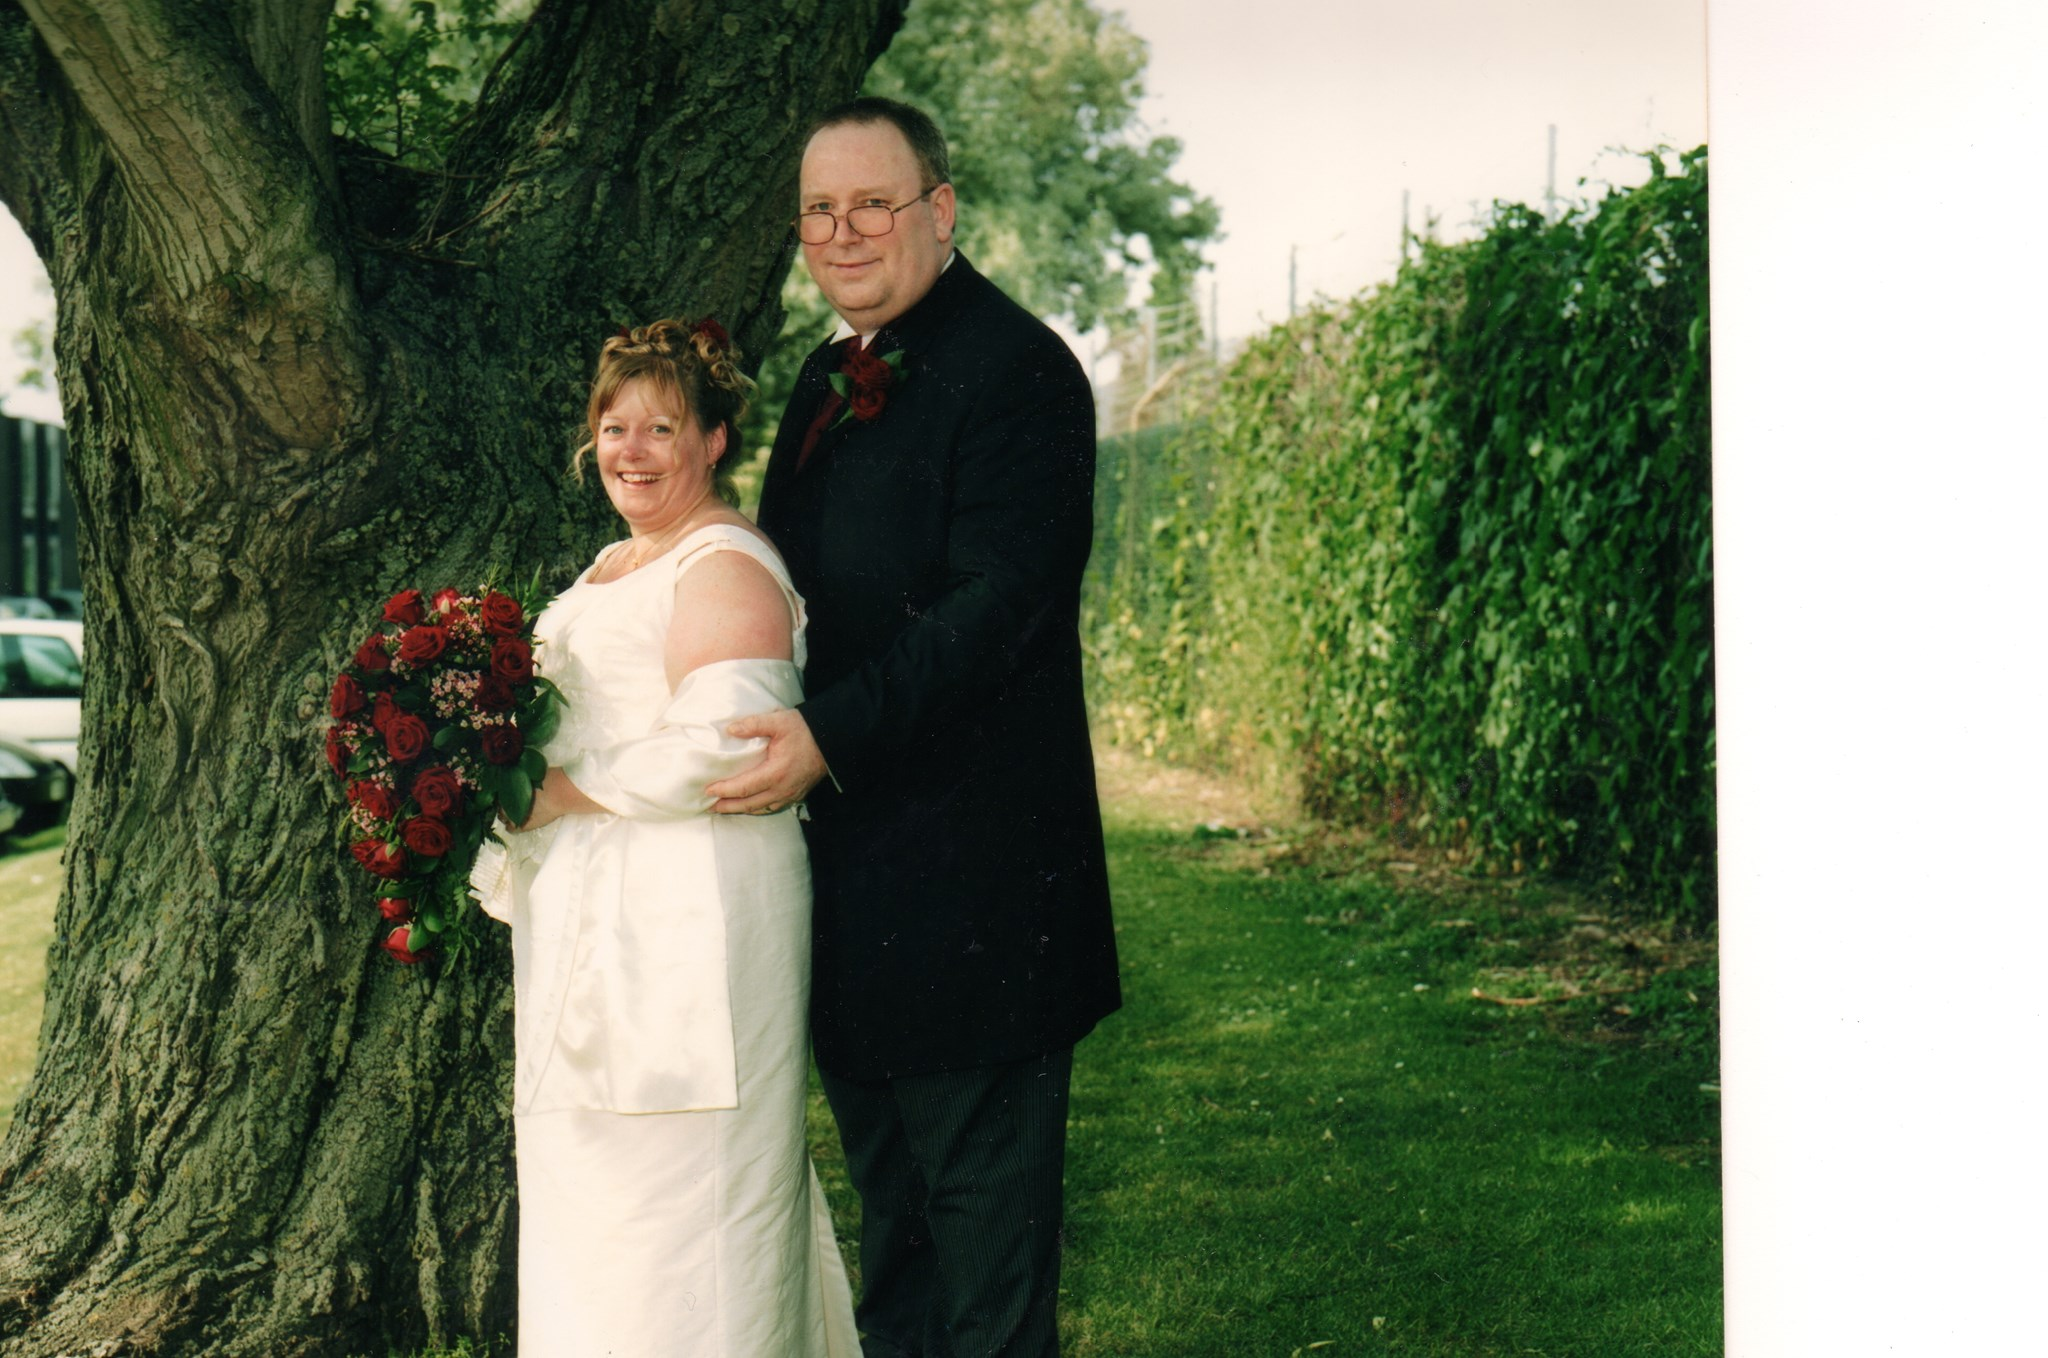 Tony and Di's Wedding 31st May 2003